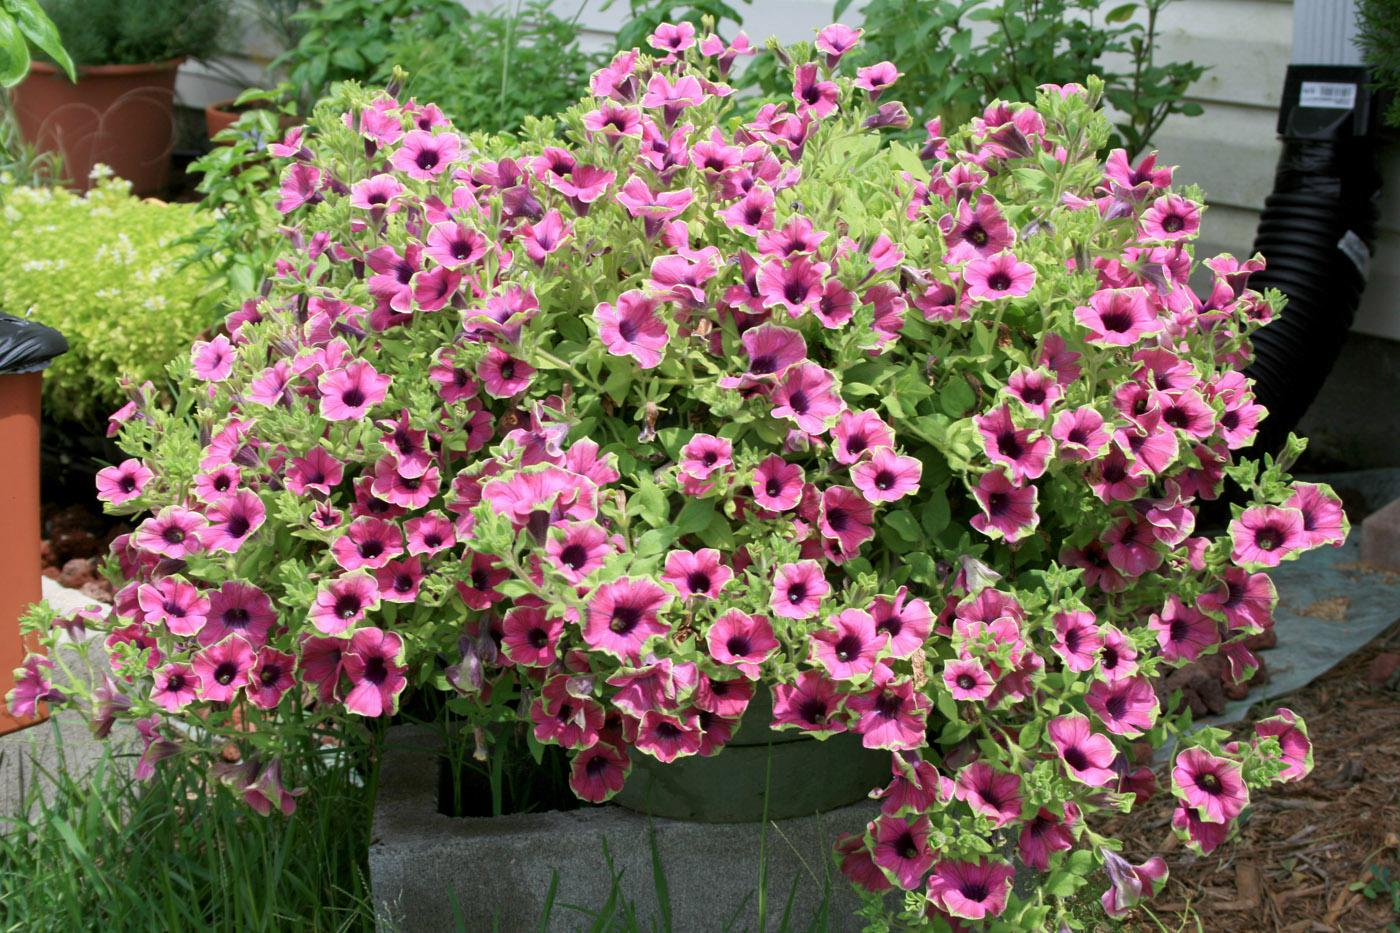 This Pretty Much Picasso petunia looks great because it is growing in high-quality potting mix. (Photo by Gary Bachman)